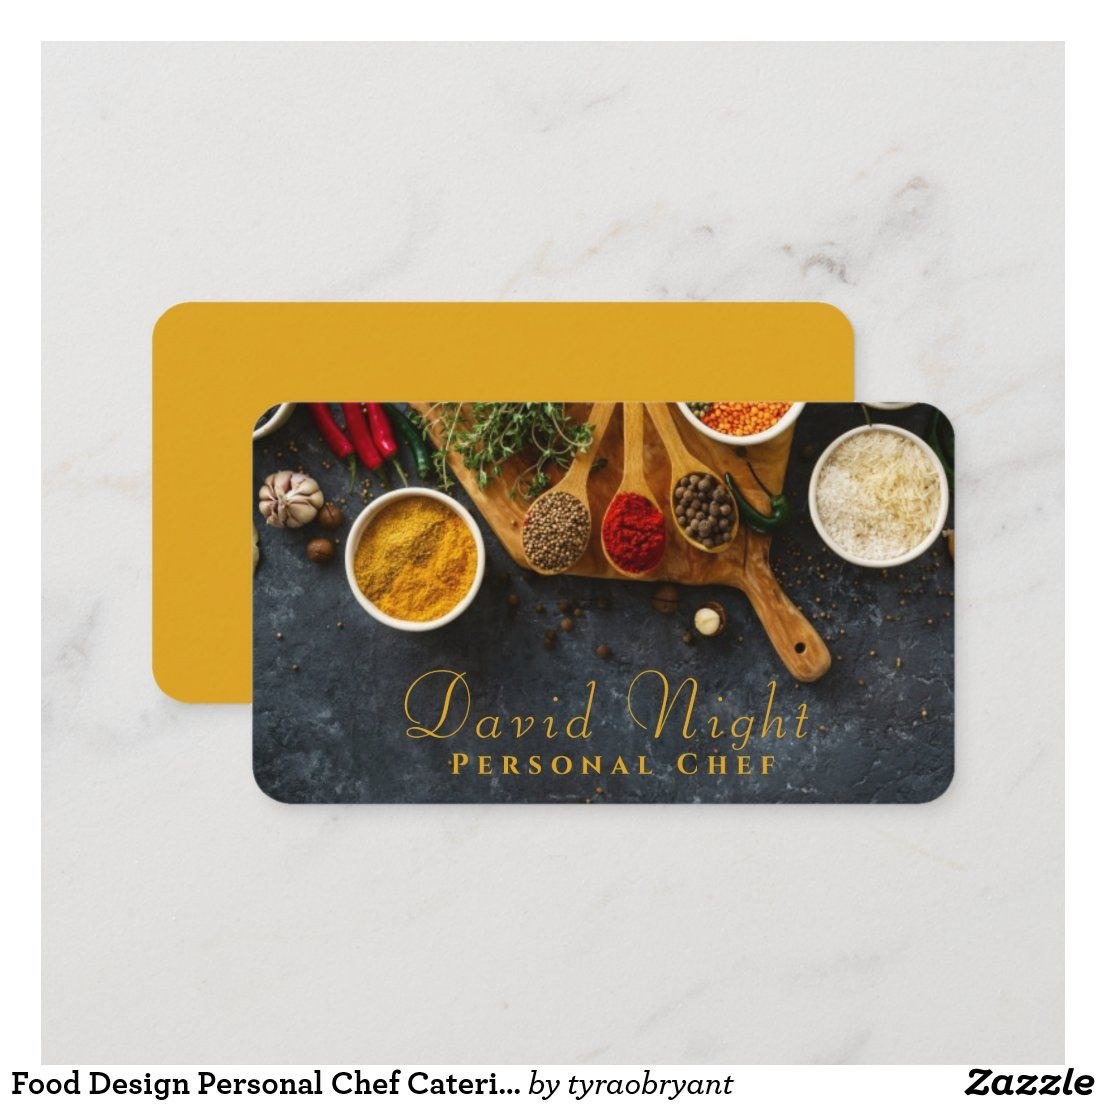 Food Design Personal Chef Catering Business Card Zazzle Com Catering Business Cards Restaurant Business Cards Food Business Card Design